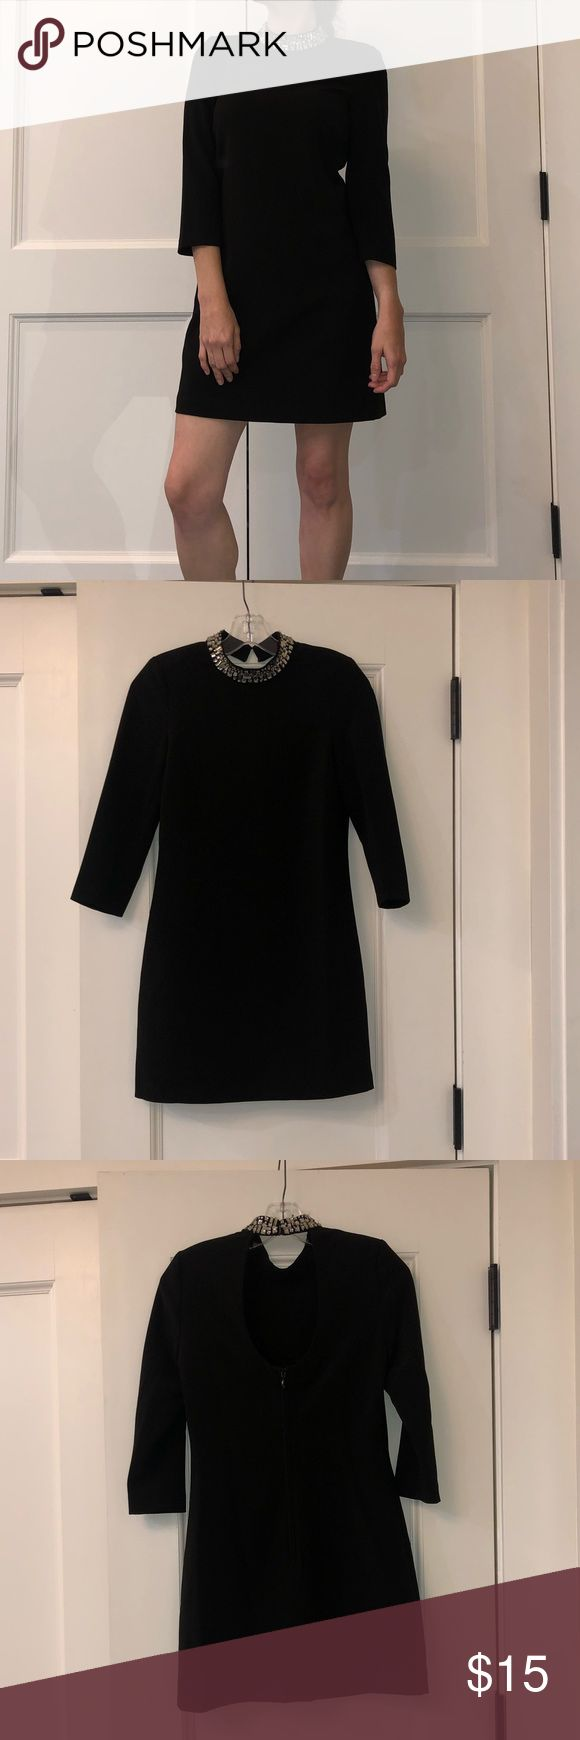 H&M Little Black Dress Little black embellished neck classic race party dress Th... 2